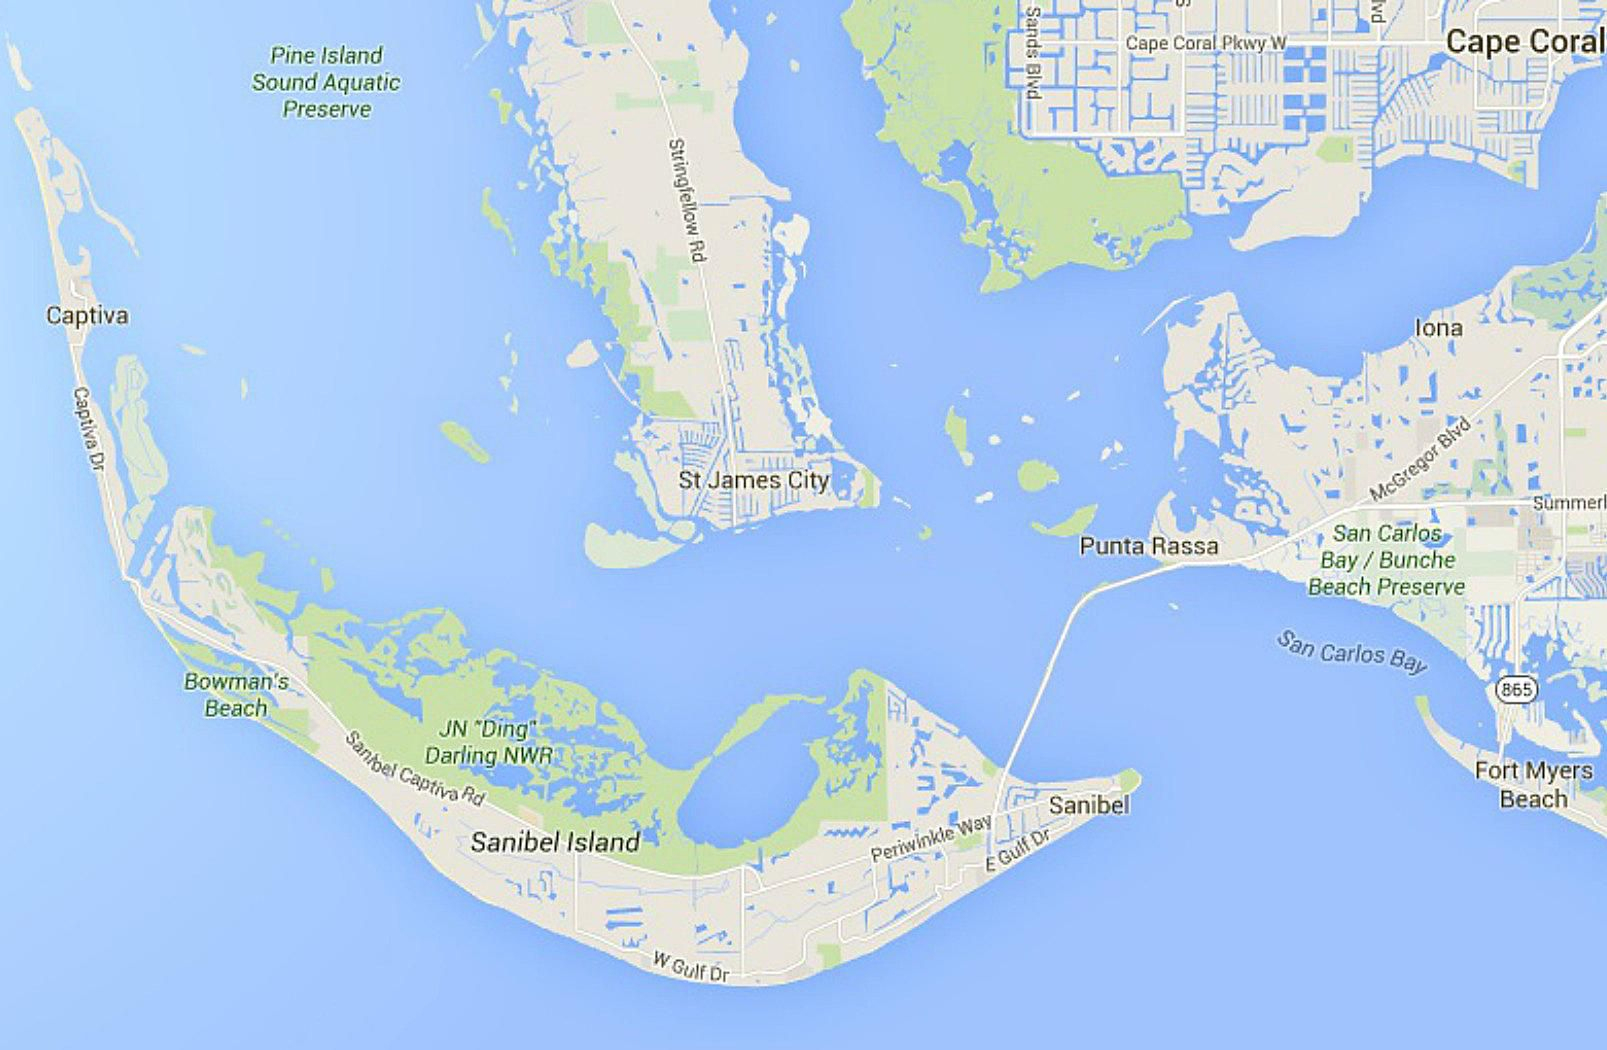 Maps Of Florida: Orlando, Tampa, Miami, Keys, And More - Map Of Florida Gulf Coast Islands